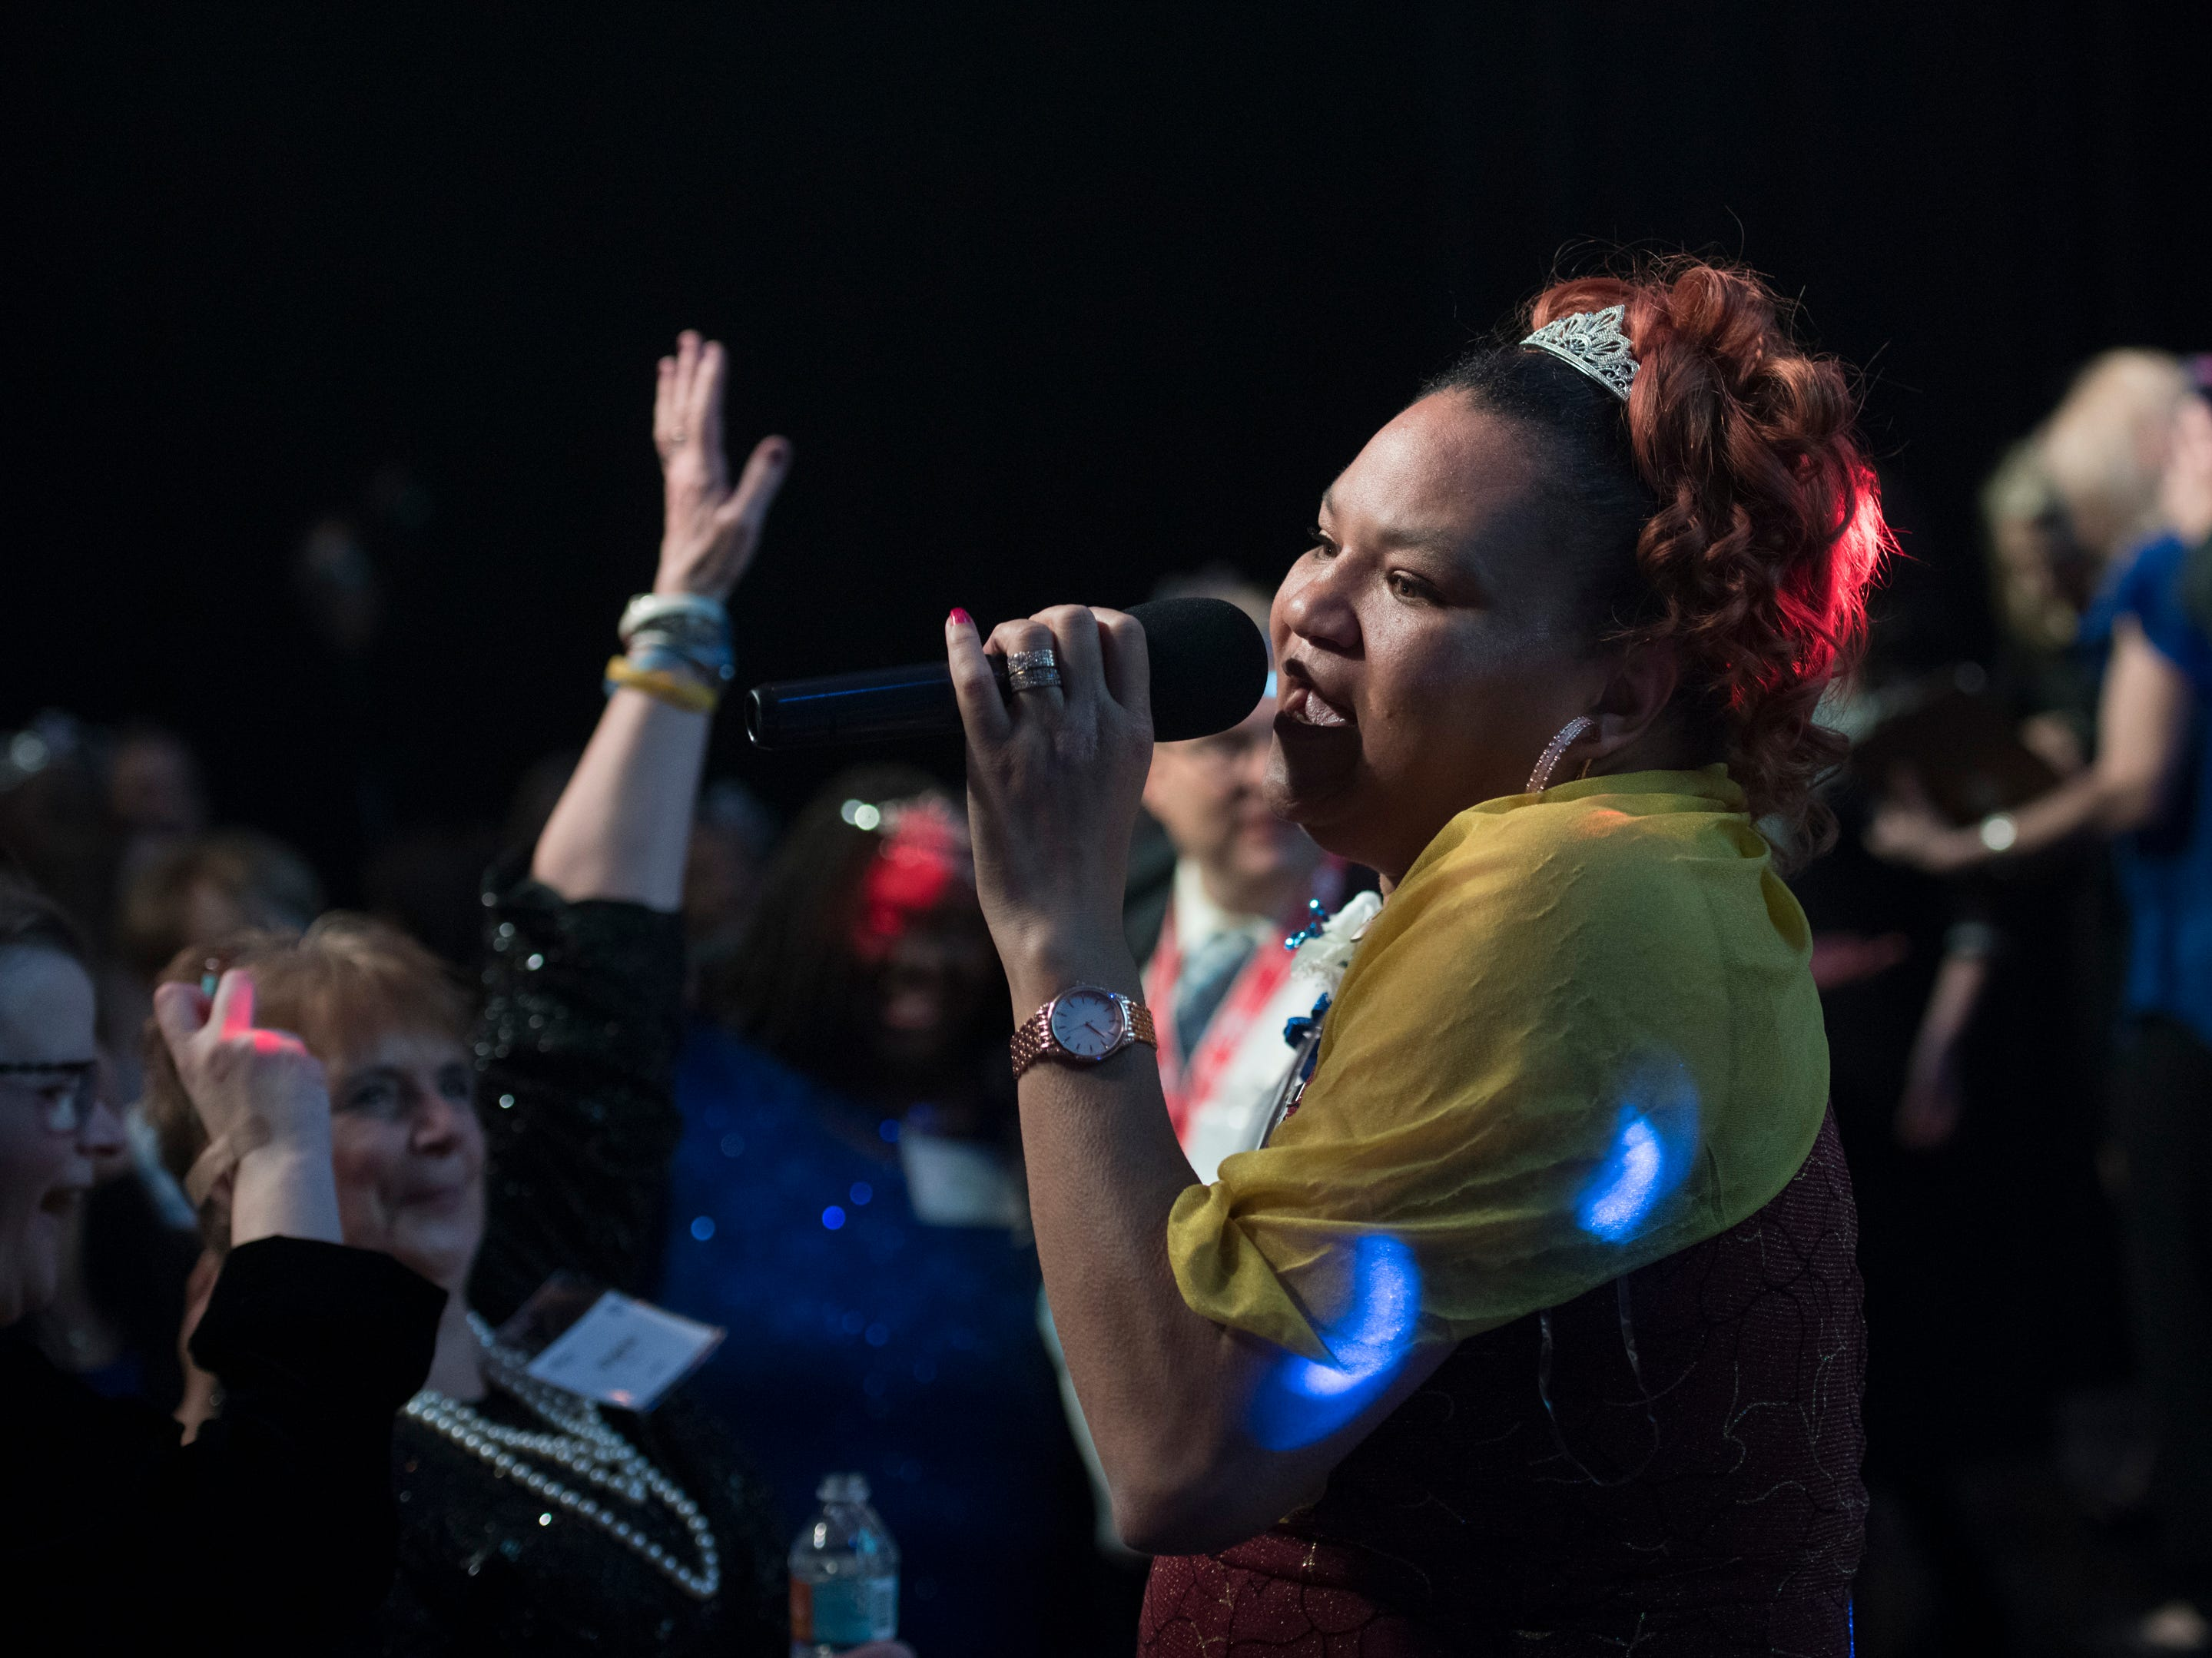 Bridgett Smith sings during the Night to Shine prom for people with special needs sponsored by the Tim Tebow Foundation at Perdido Bay United Methodist Church in Pensacola on Friday, February 8, 2019.